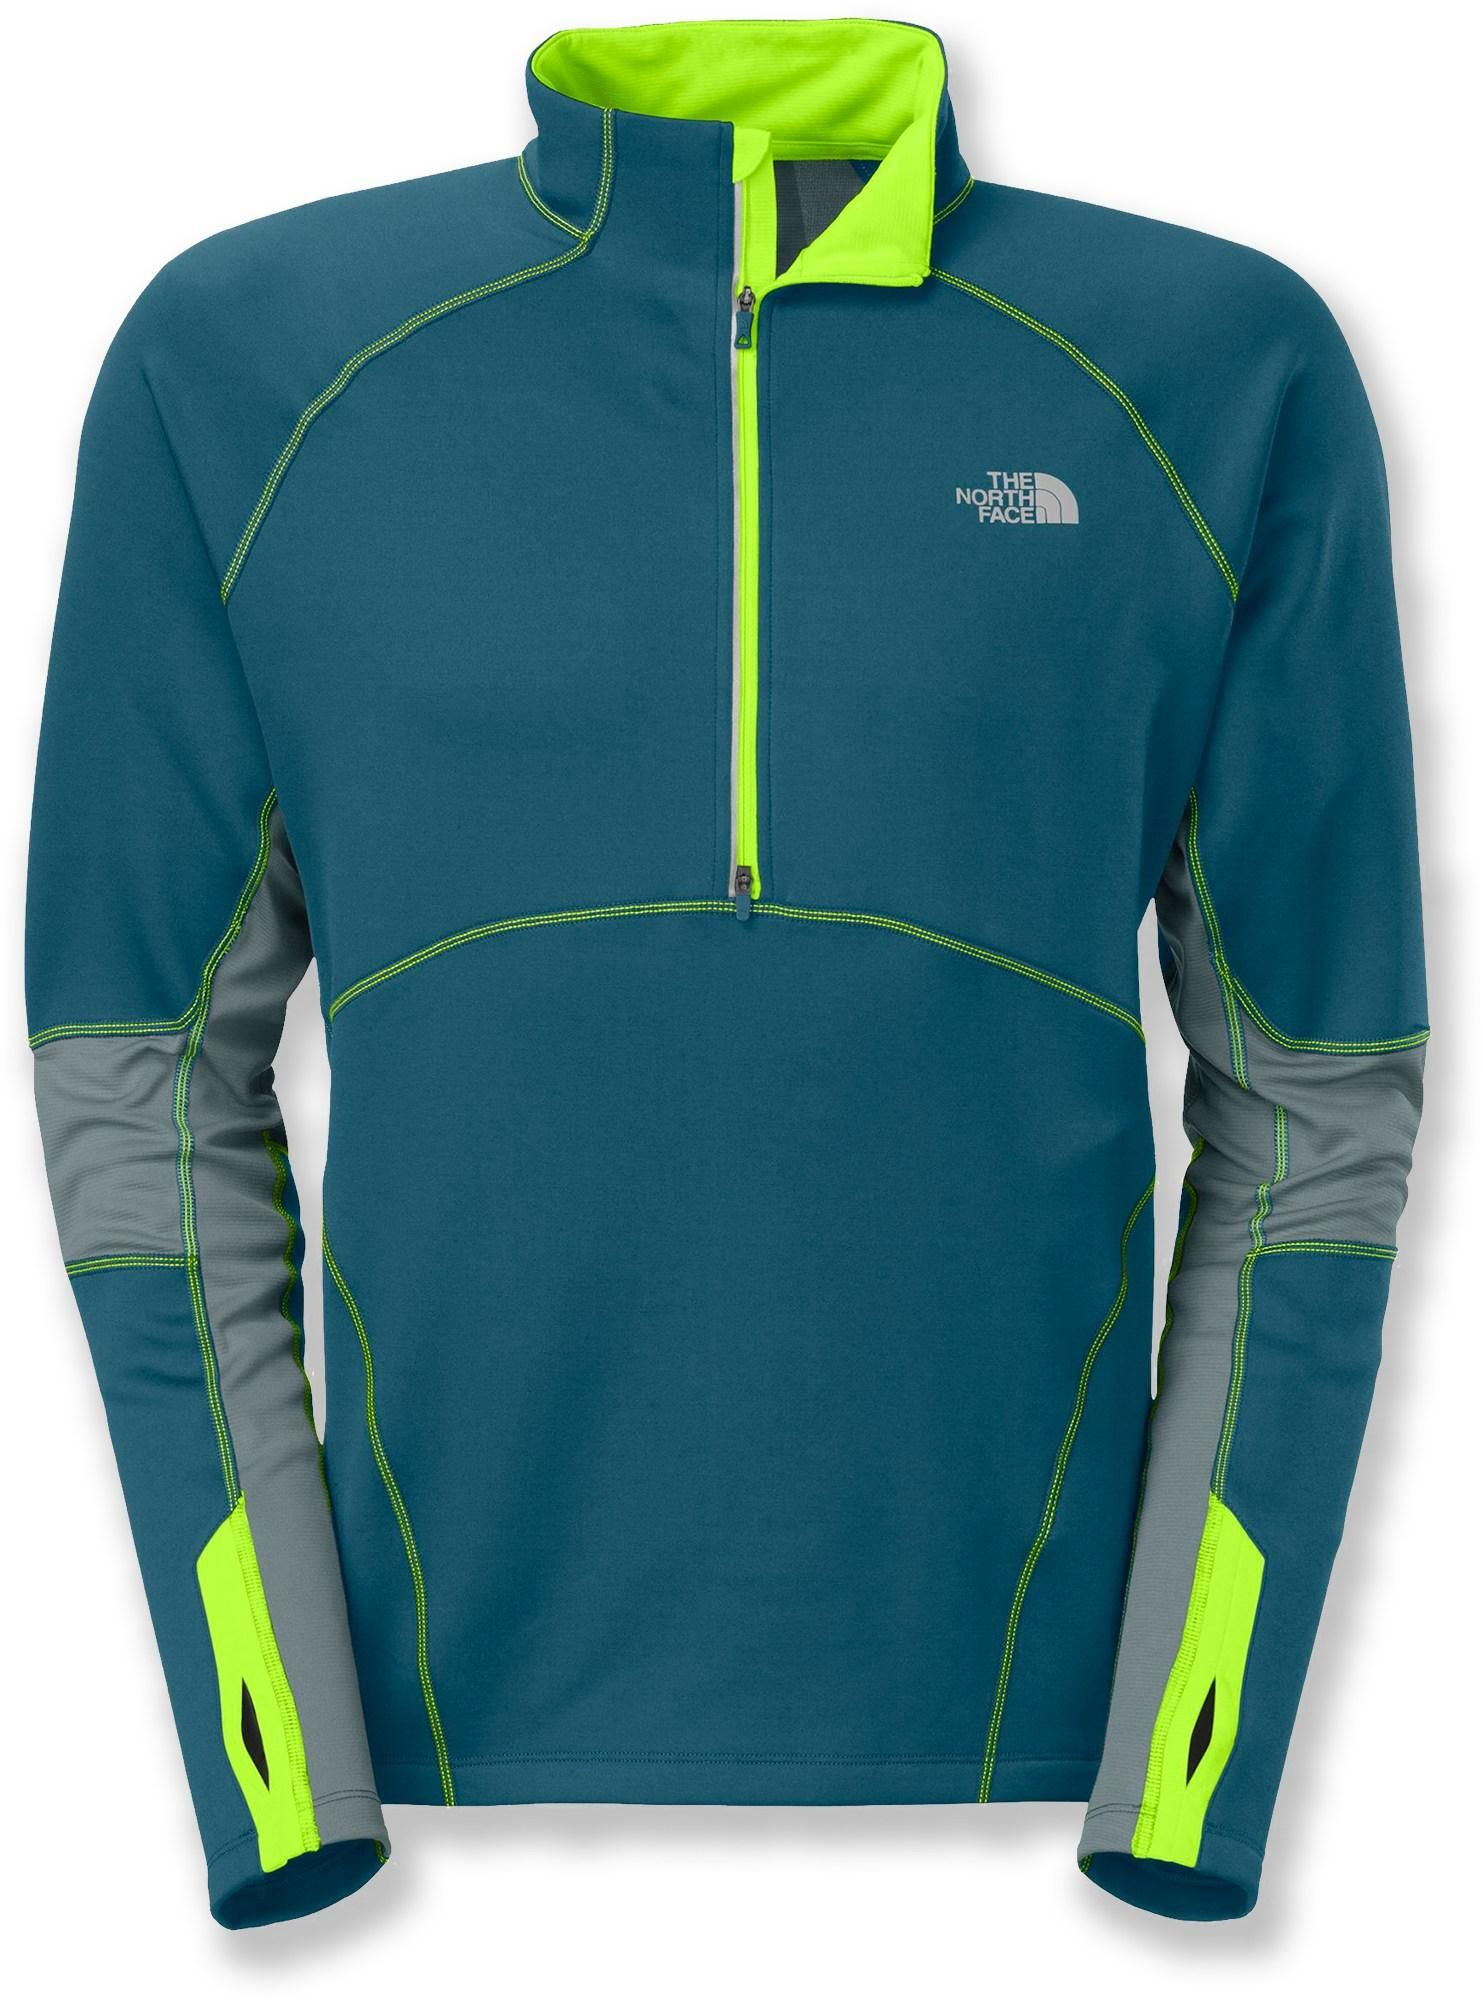 91cd80012 The Momentum Thermal half-zip top from The North Face delivers ...